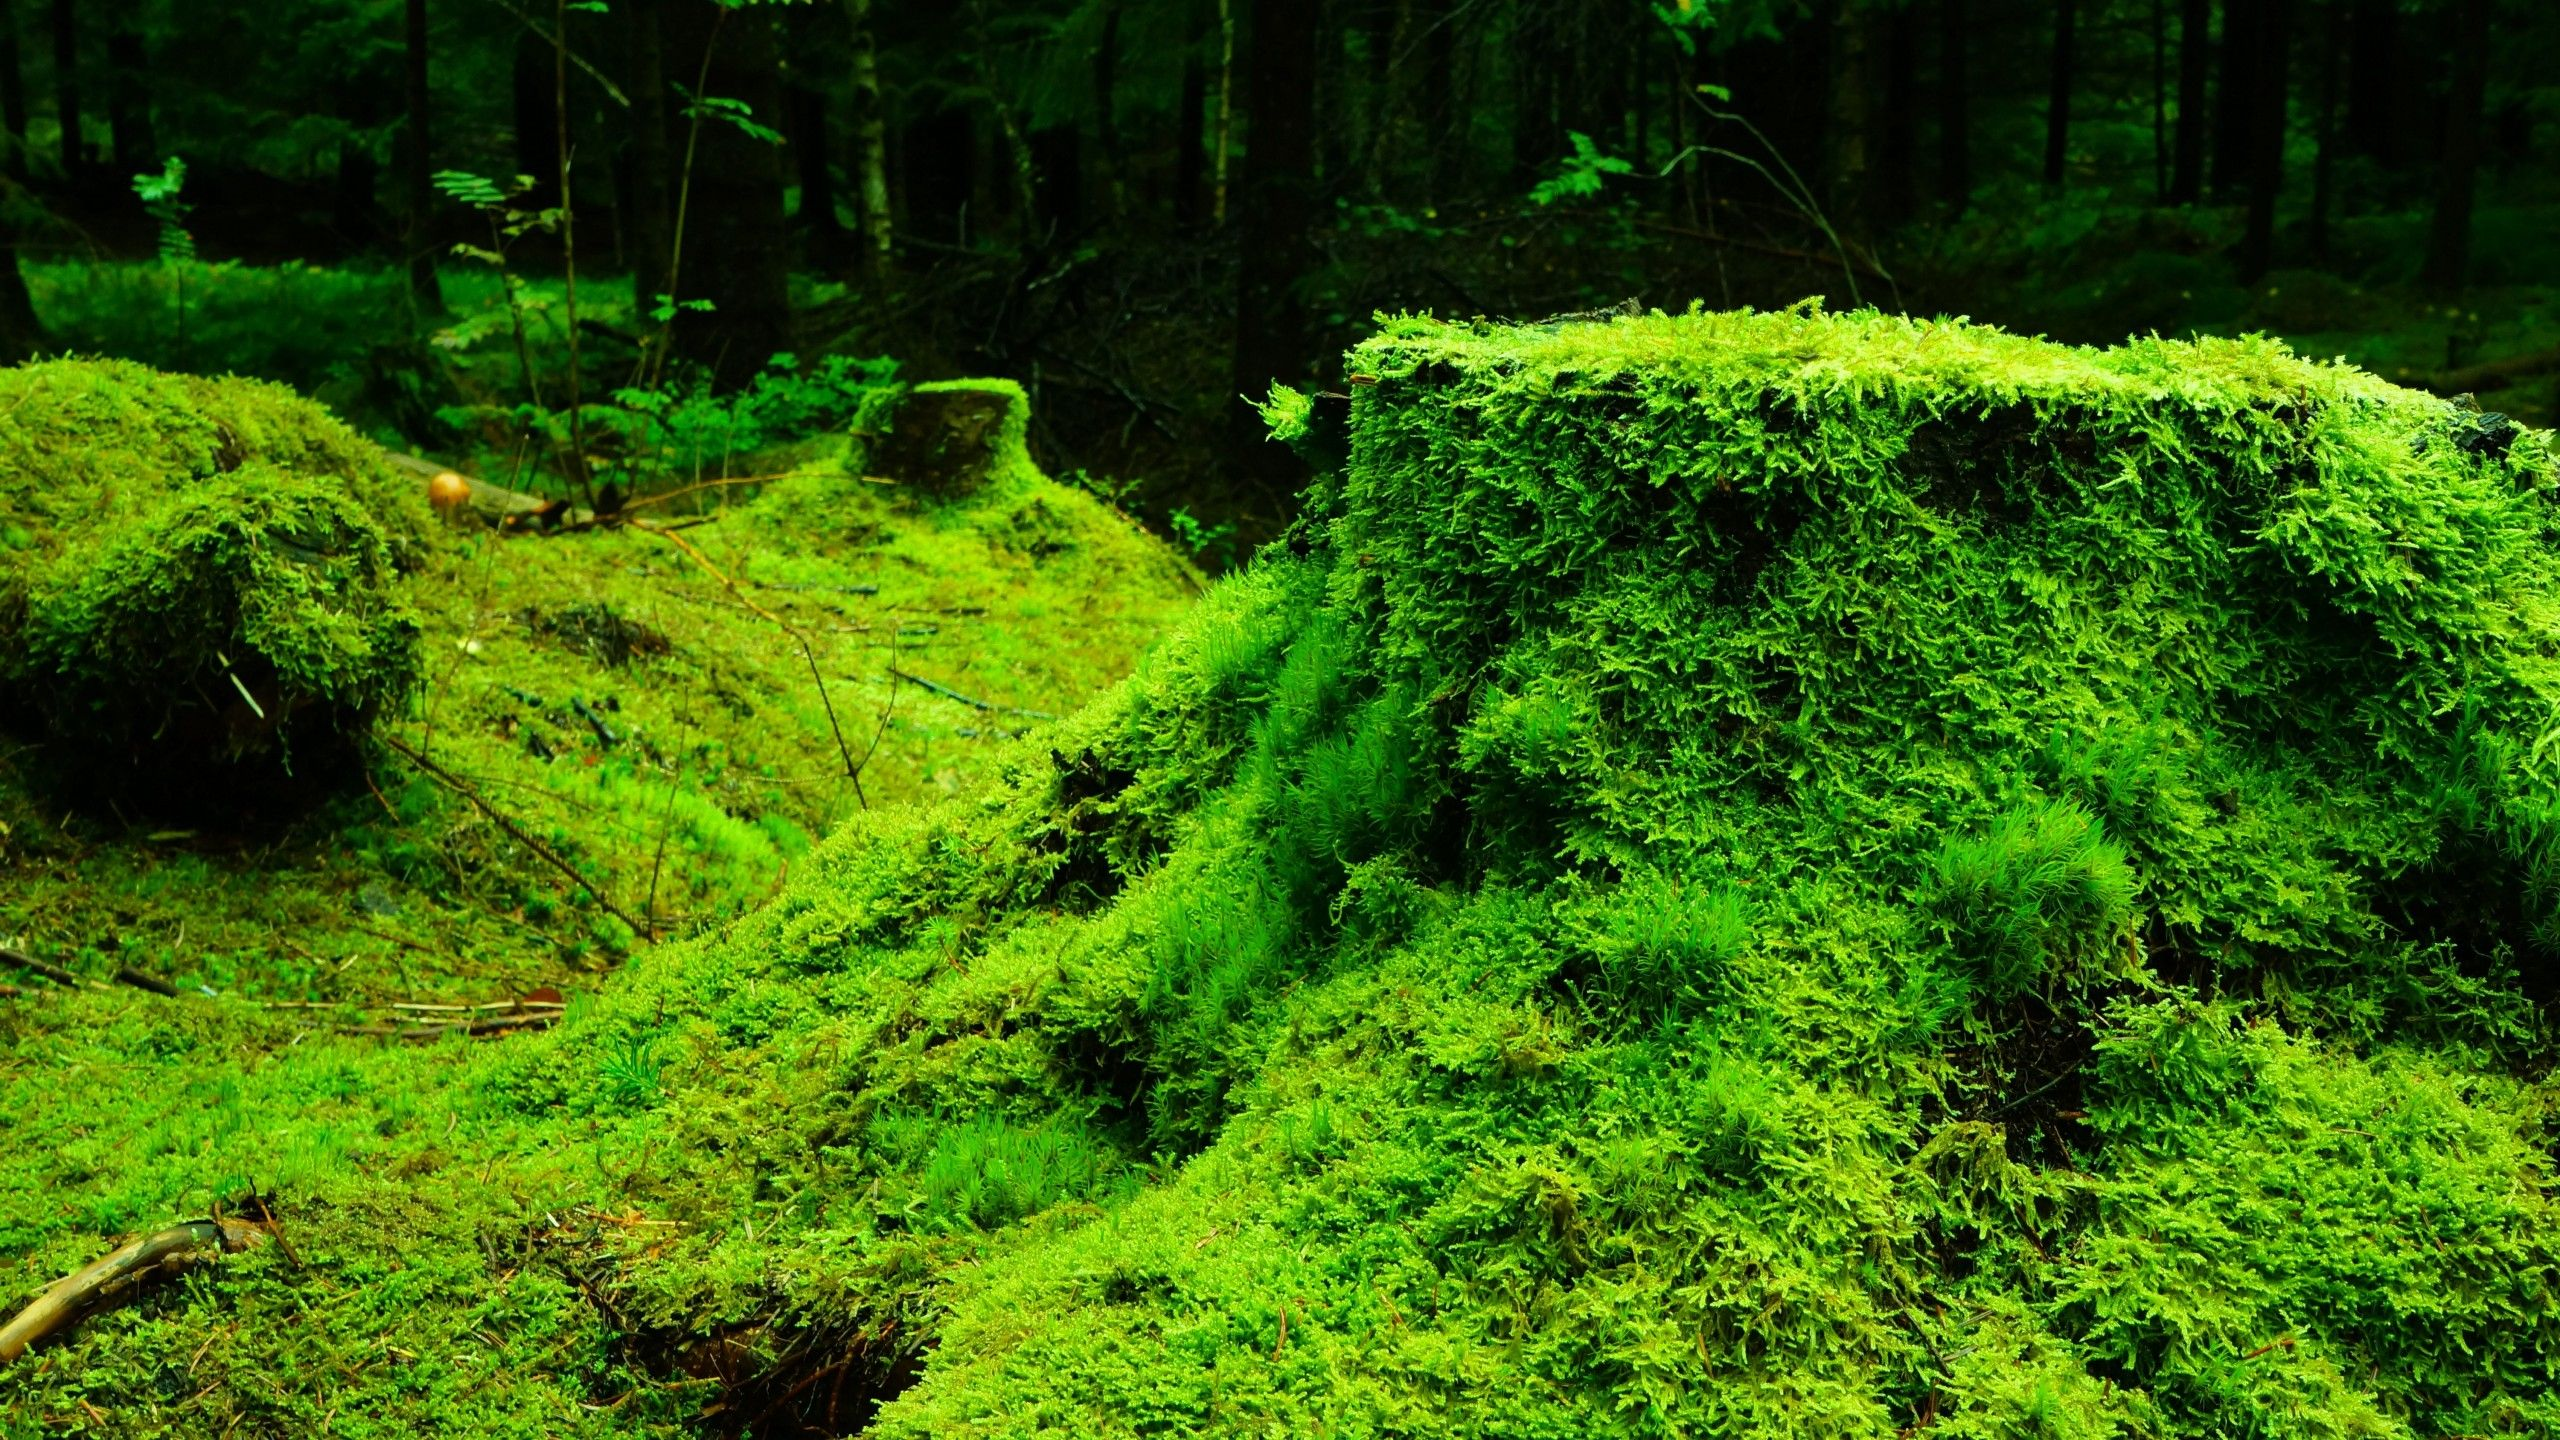 Dark Green Nature Wallpaper Android With High Resolution 2560x1440 Px 133 MB